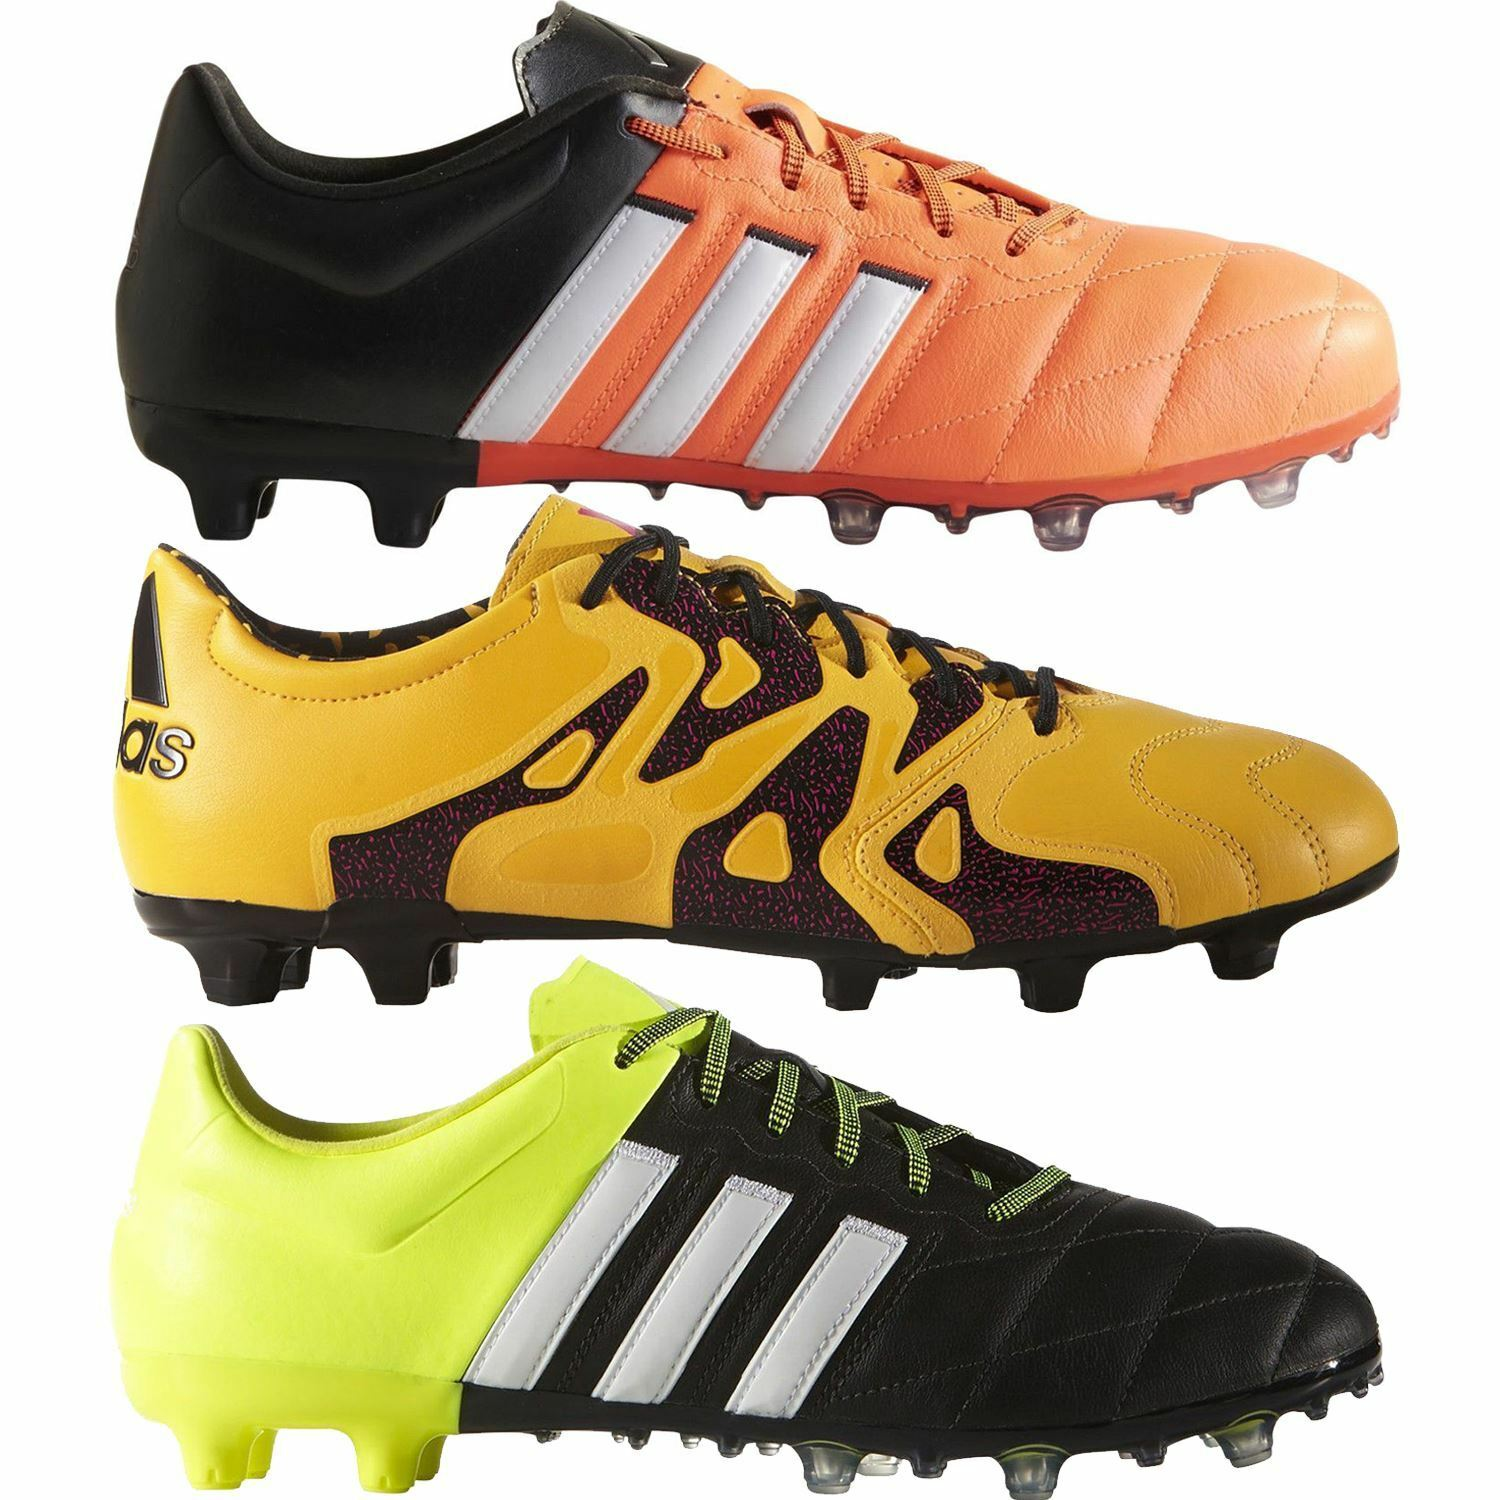 1d7483f2a7db Adidas FOOTBALL BOOTS ACE 15.2 FIRM GROUND SOCCER MEN S LEATHER X ...